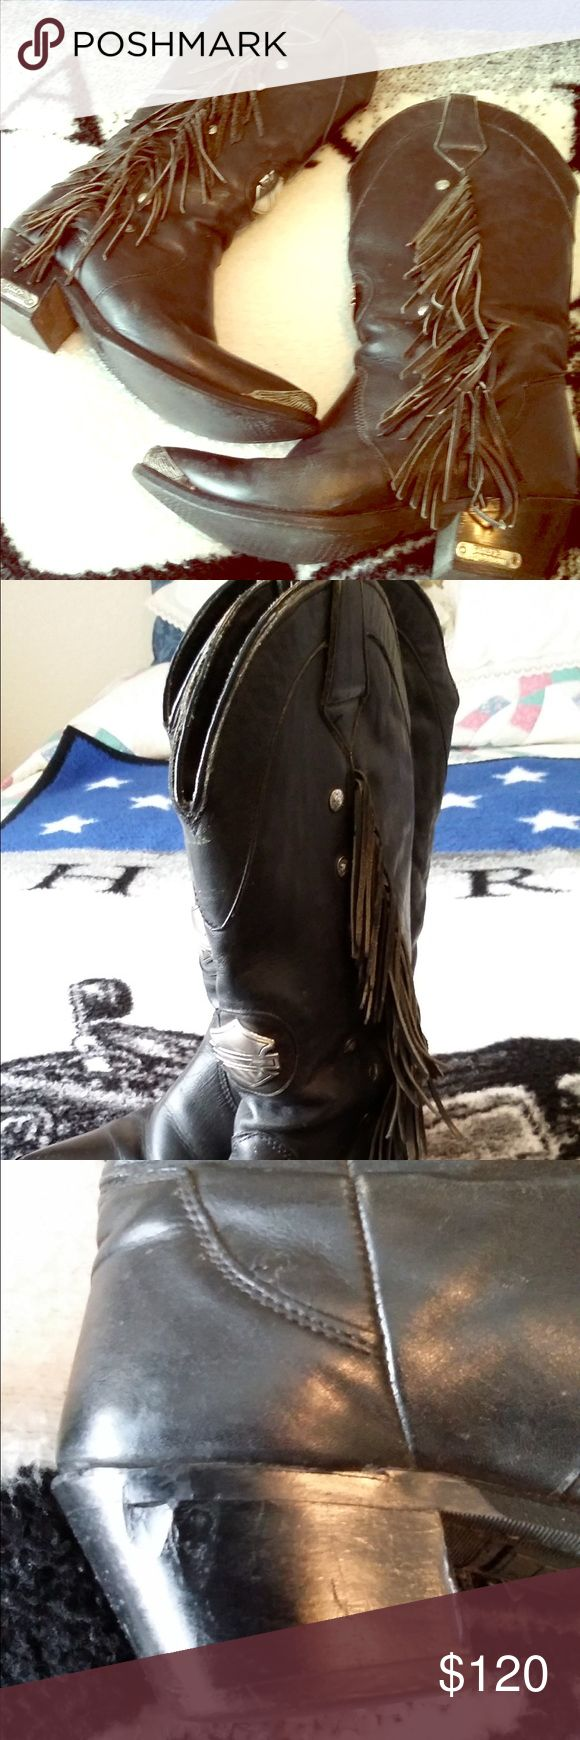 Harley Davidson Motorcycle Boots HD boots. Bought in Sturgis, SD in 1996.  Scuff mark on heel from exhaust pipe.  Size 7 med.  Been in closet unworn for at least 10 years! Harley-Davidson Shoes Combat & Moto Boots